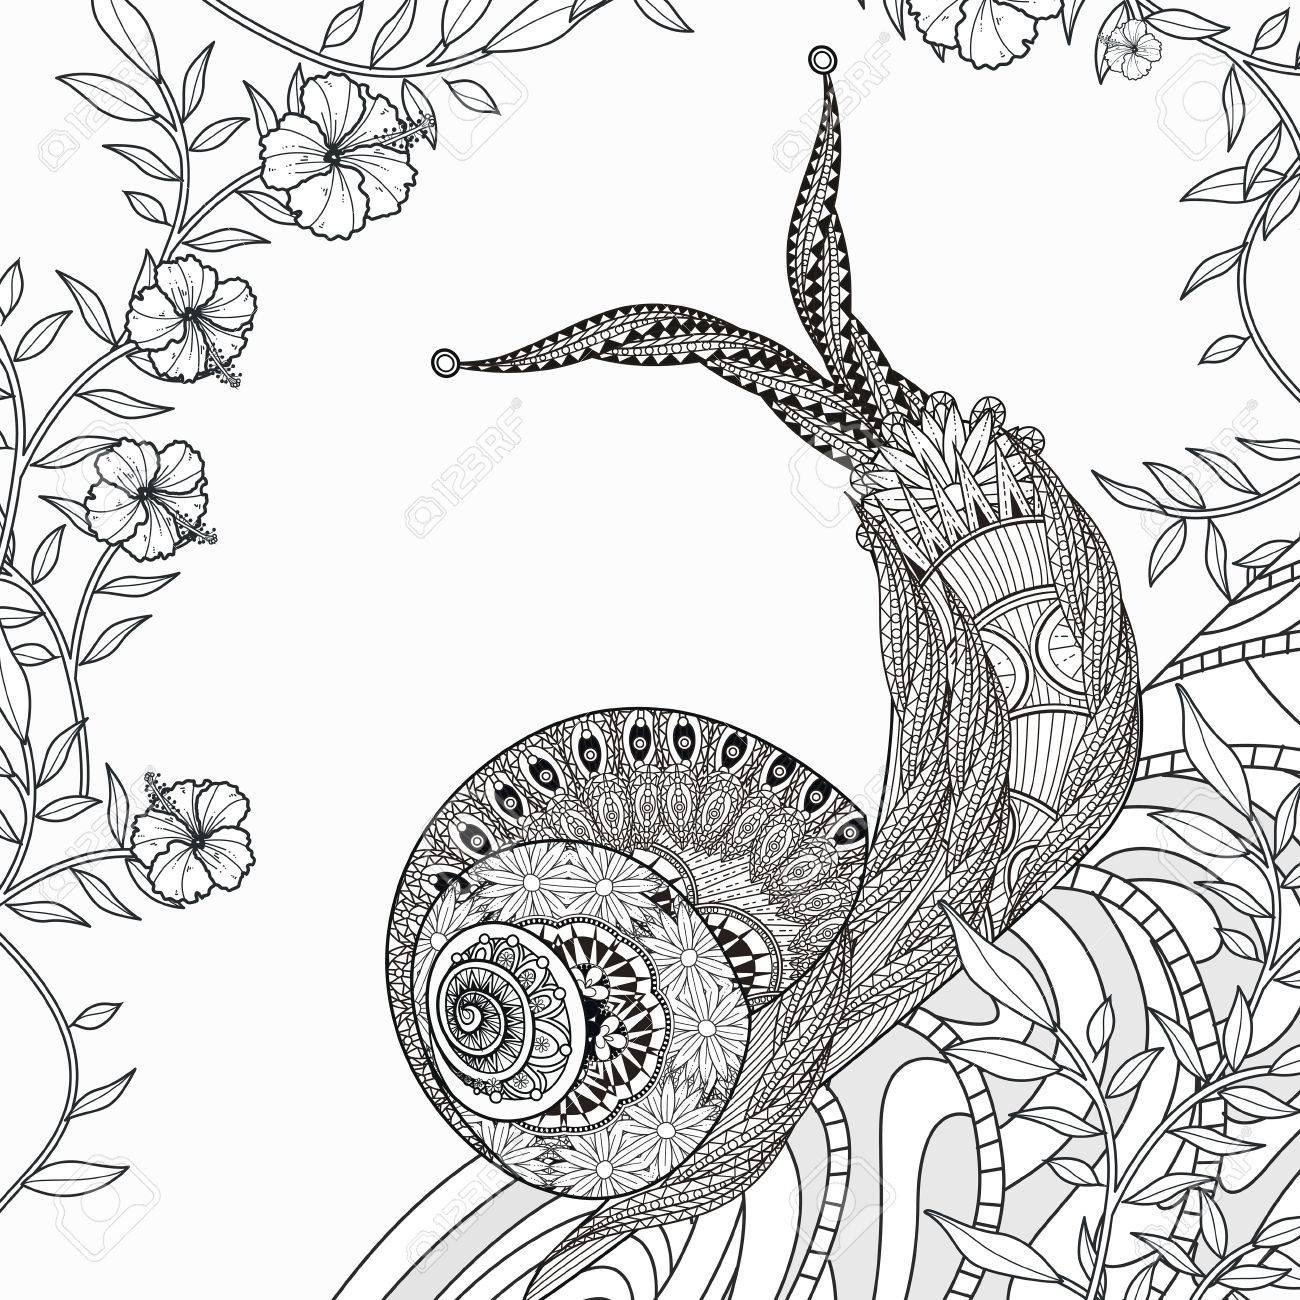 Elegant Snail Coloring Page In Exquisite Line Royalty Free Cliparts ...